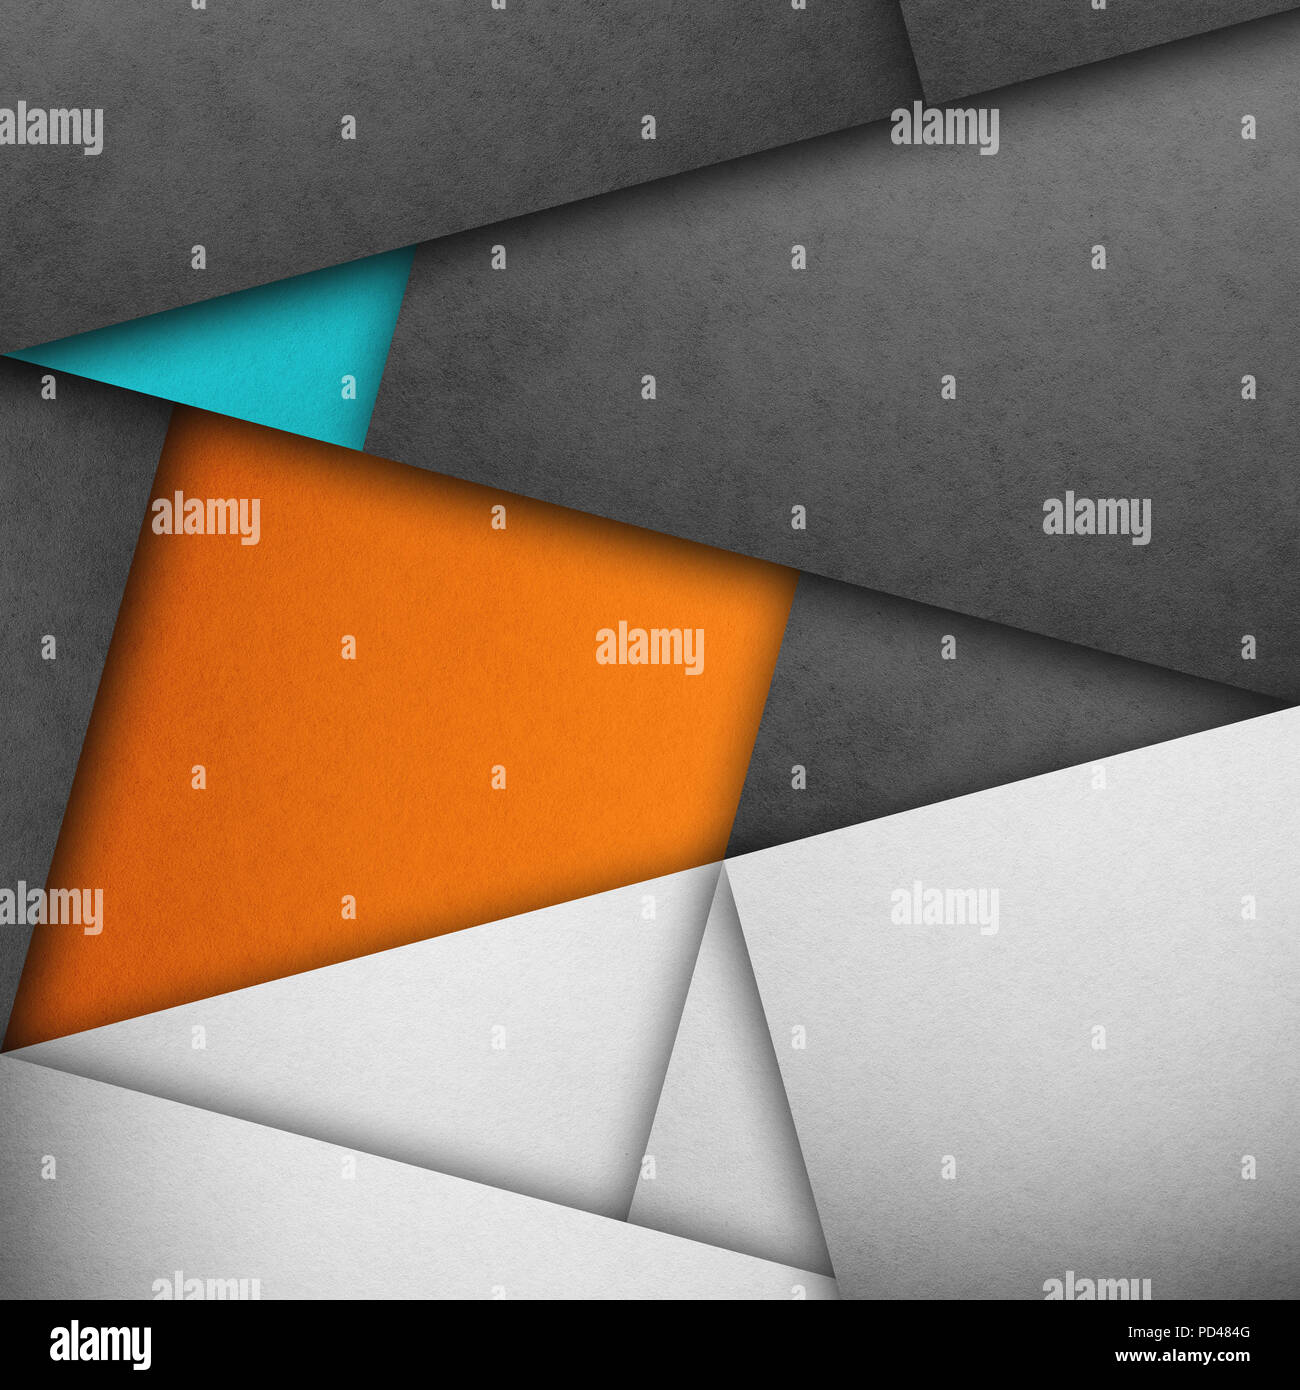 Material Design Wallpaper Real Paper Texture Gray Shades Orange And Blue Stock Photo Alamy